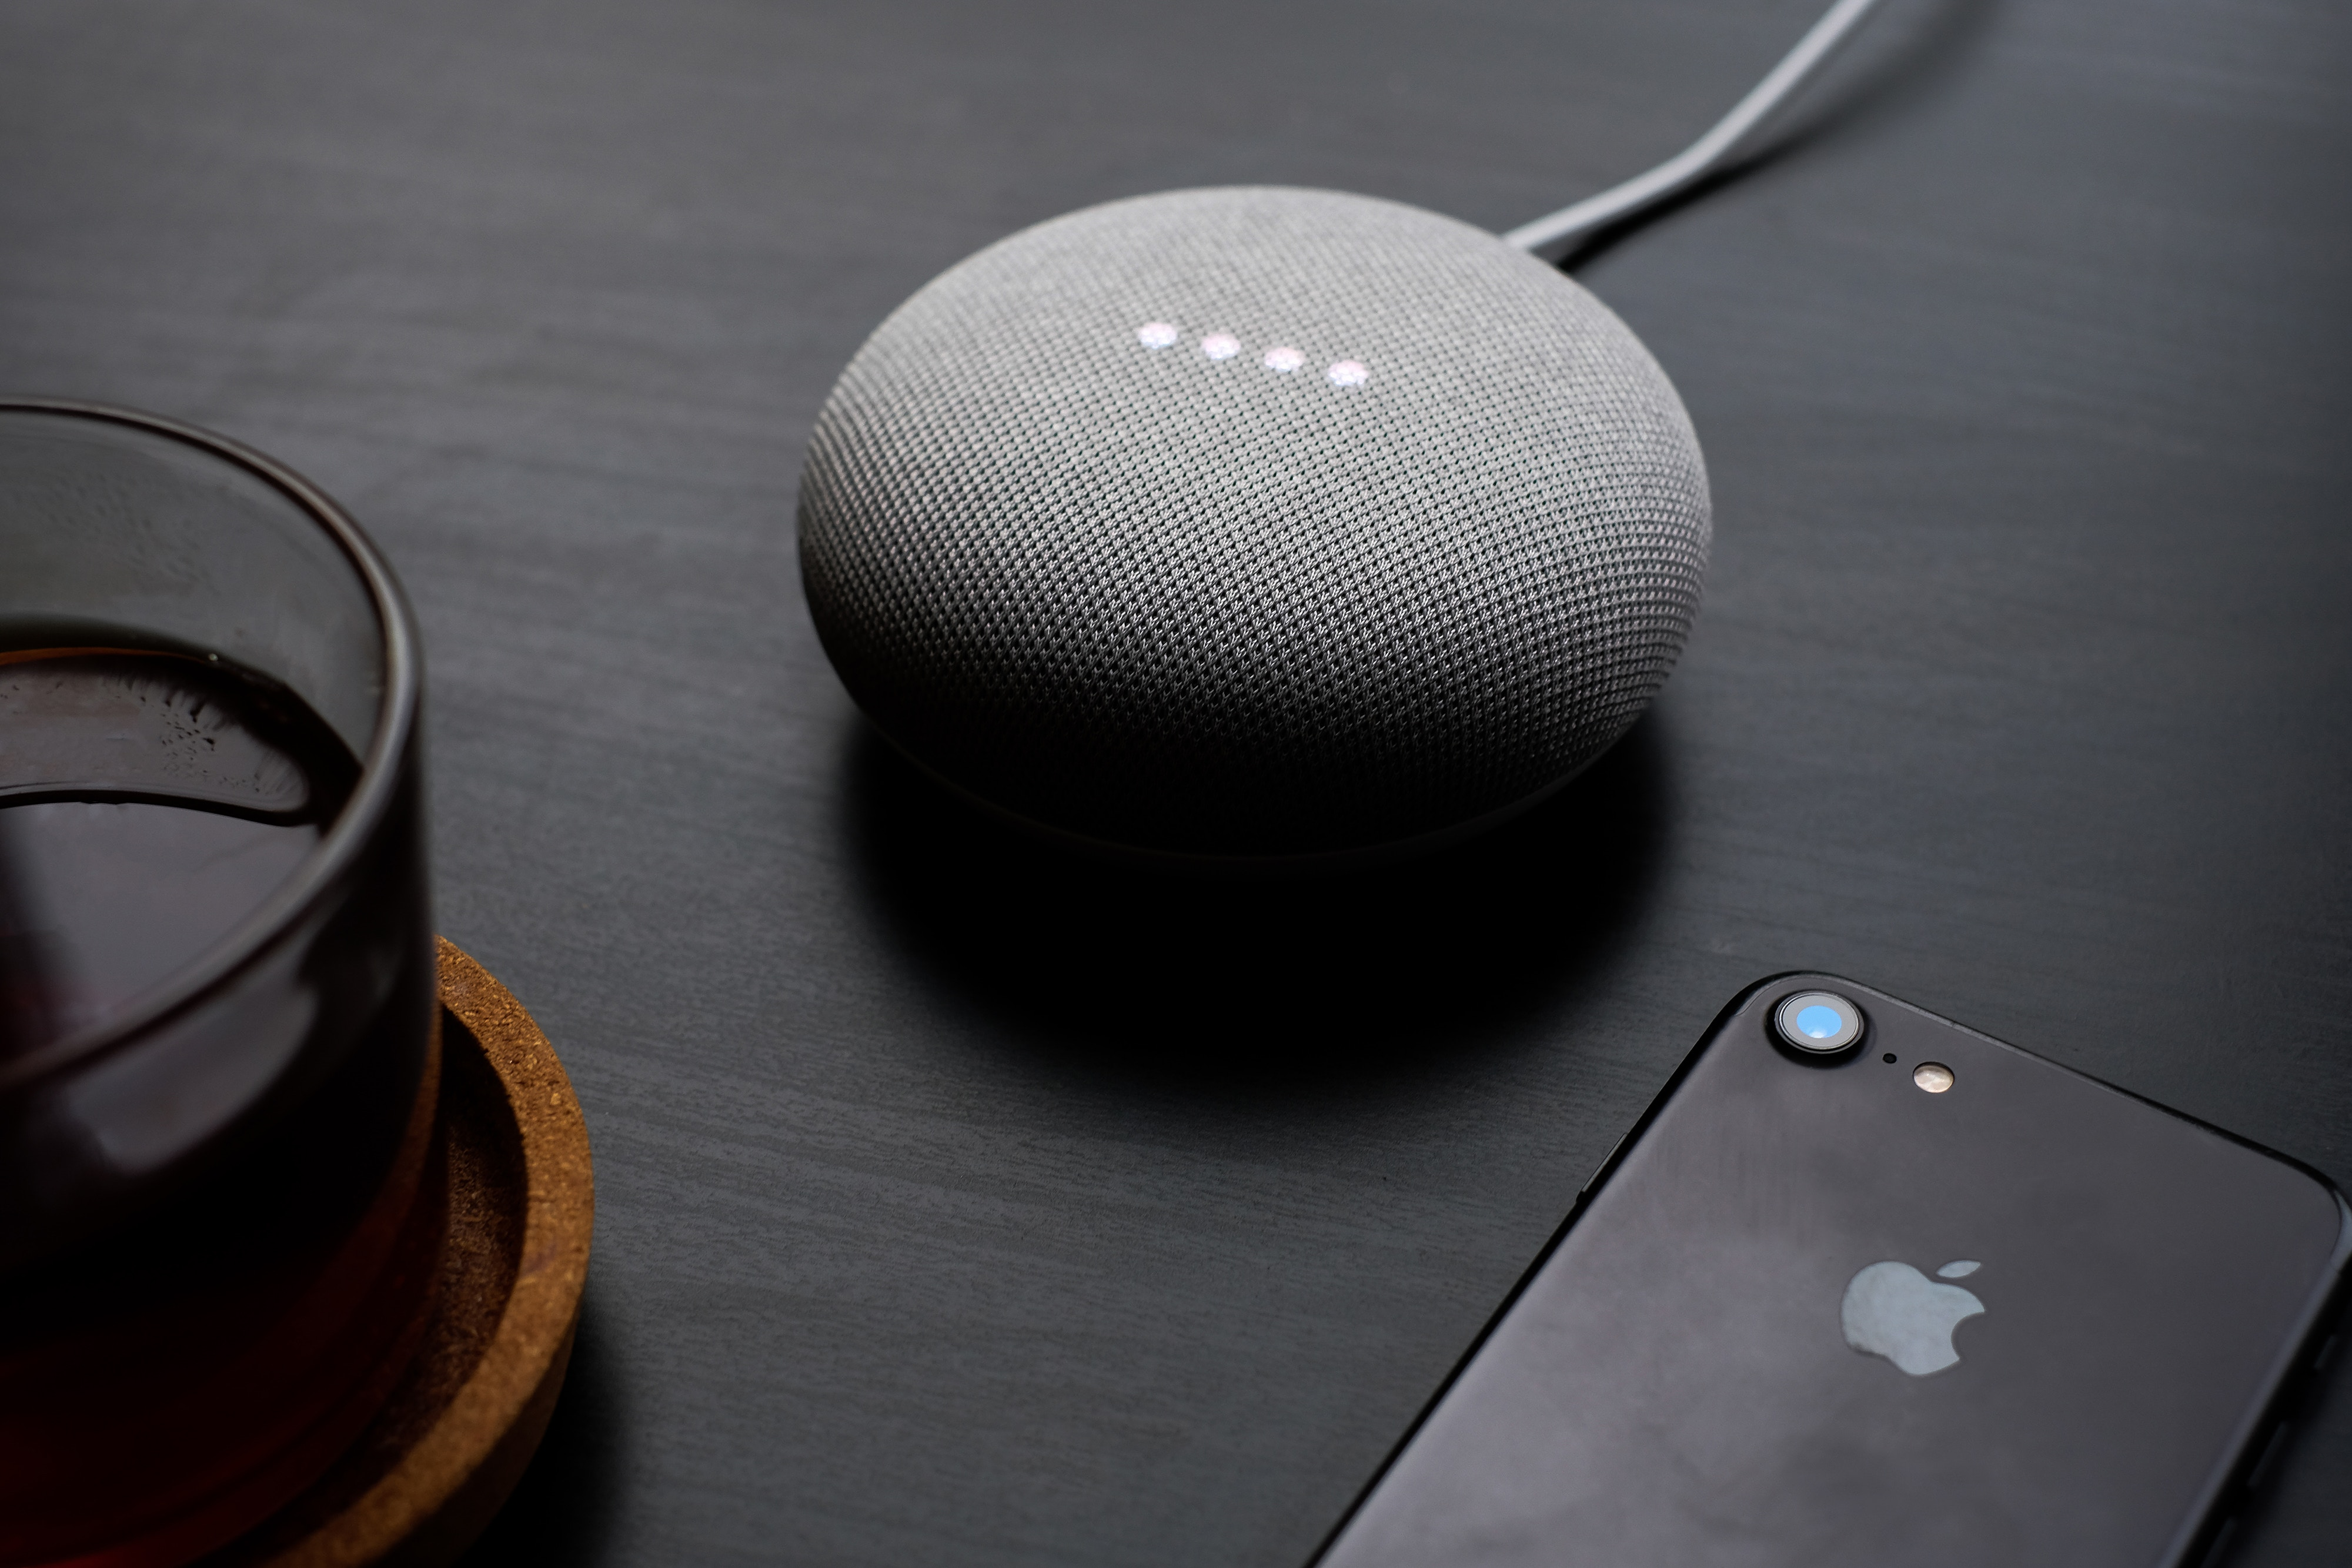 Google Home speakers equipped with Google Assistant